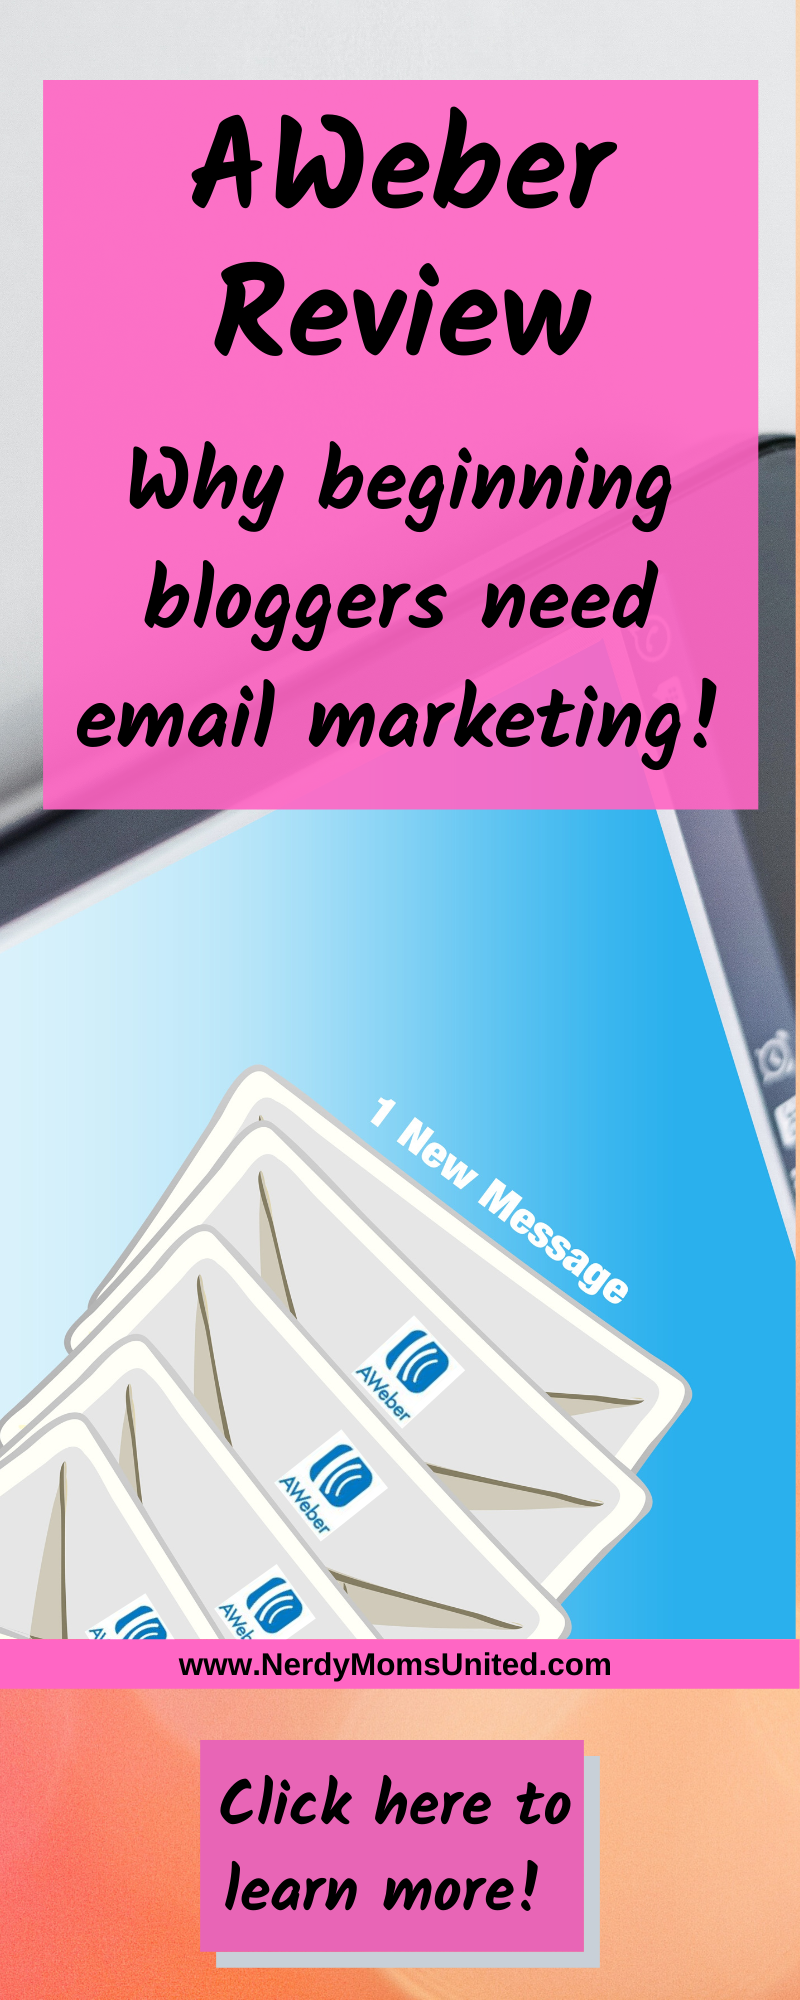 Aweber Email Marketing Lower Cost Alternative